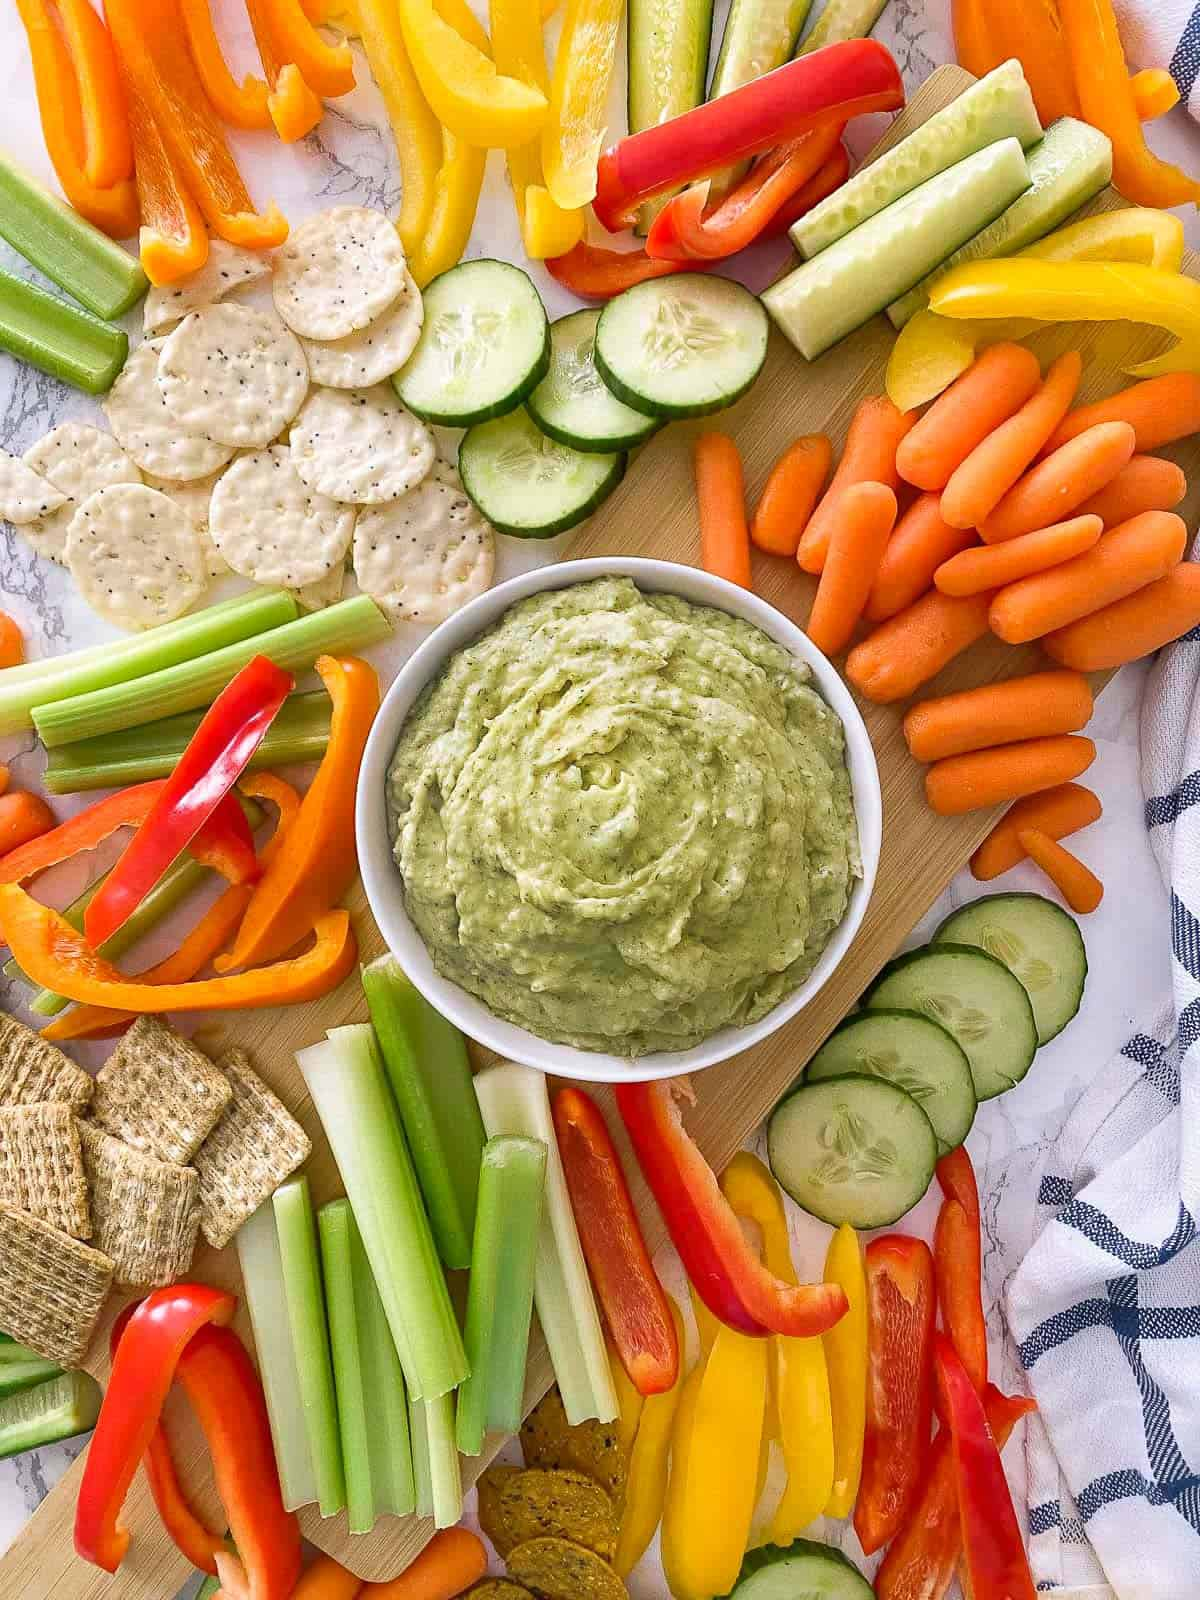 Bowl of green dip with carrots, cucumber, celery, bell peppers and crackers around it.